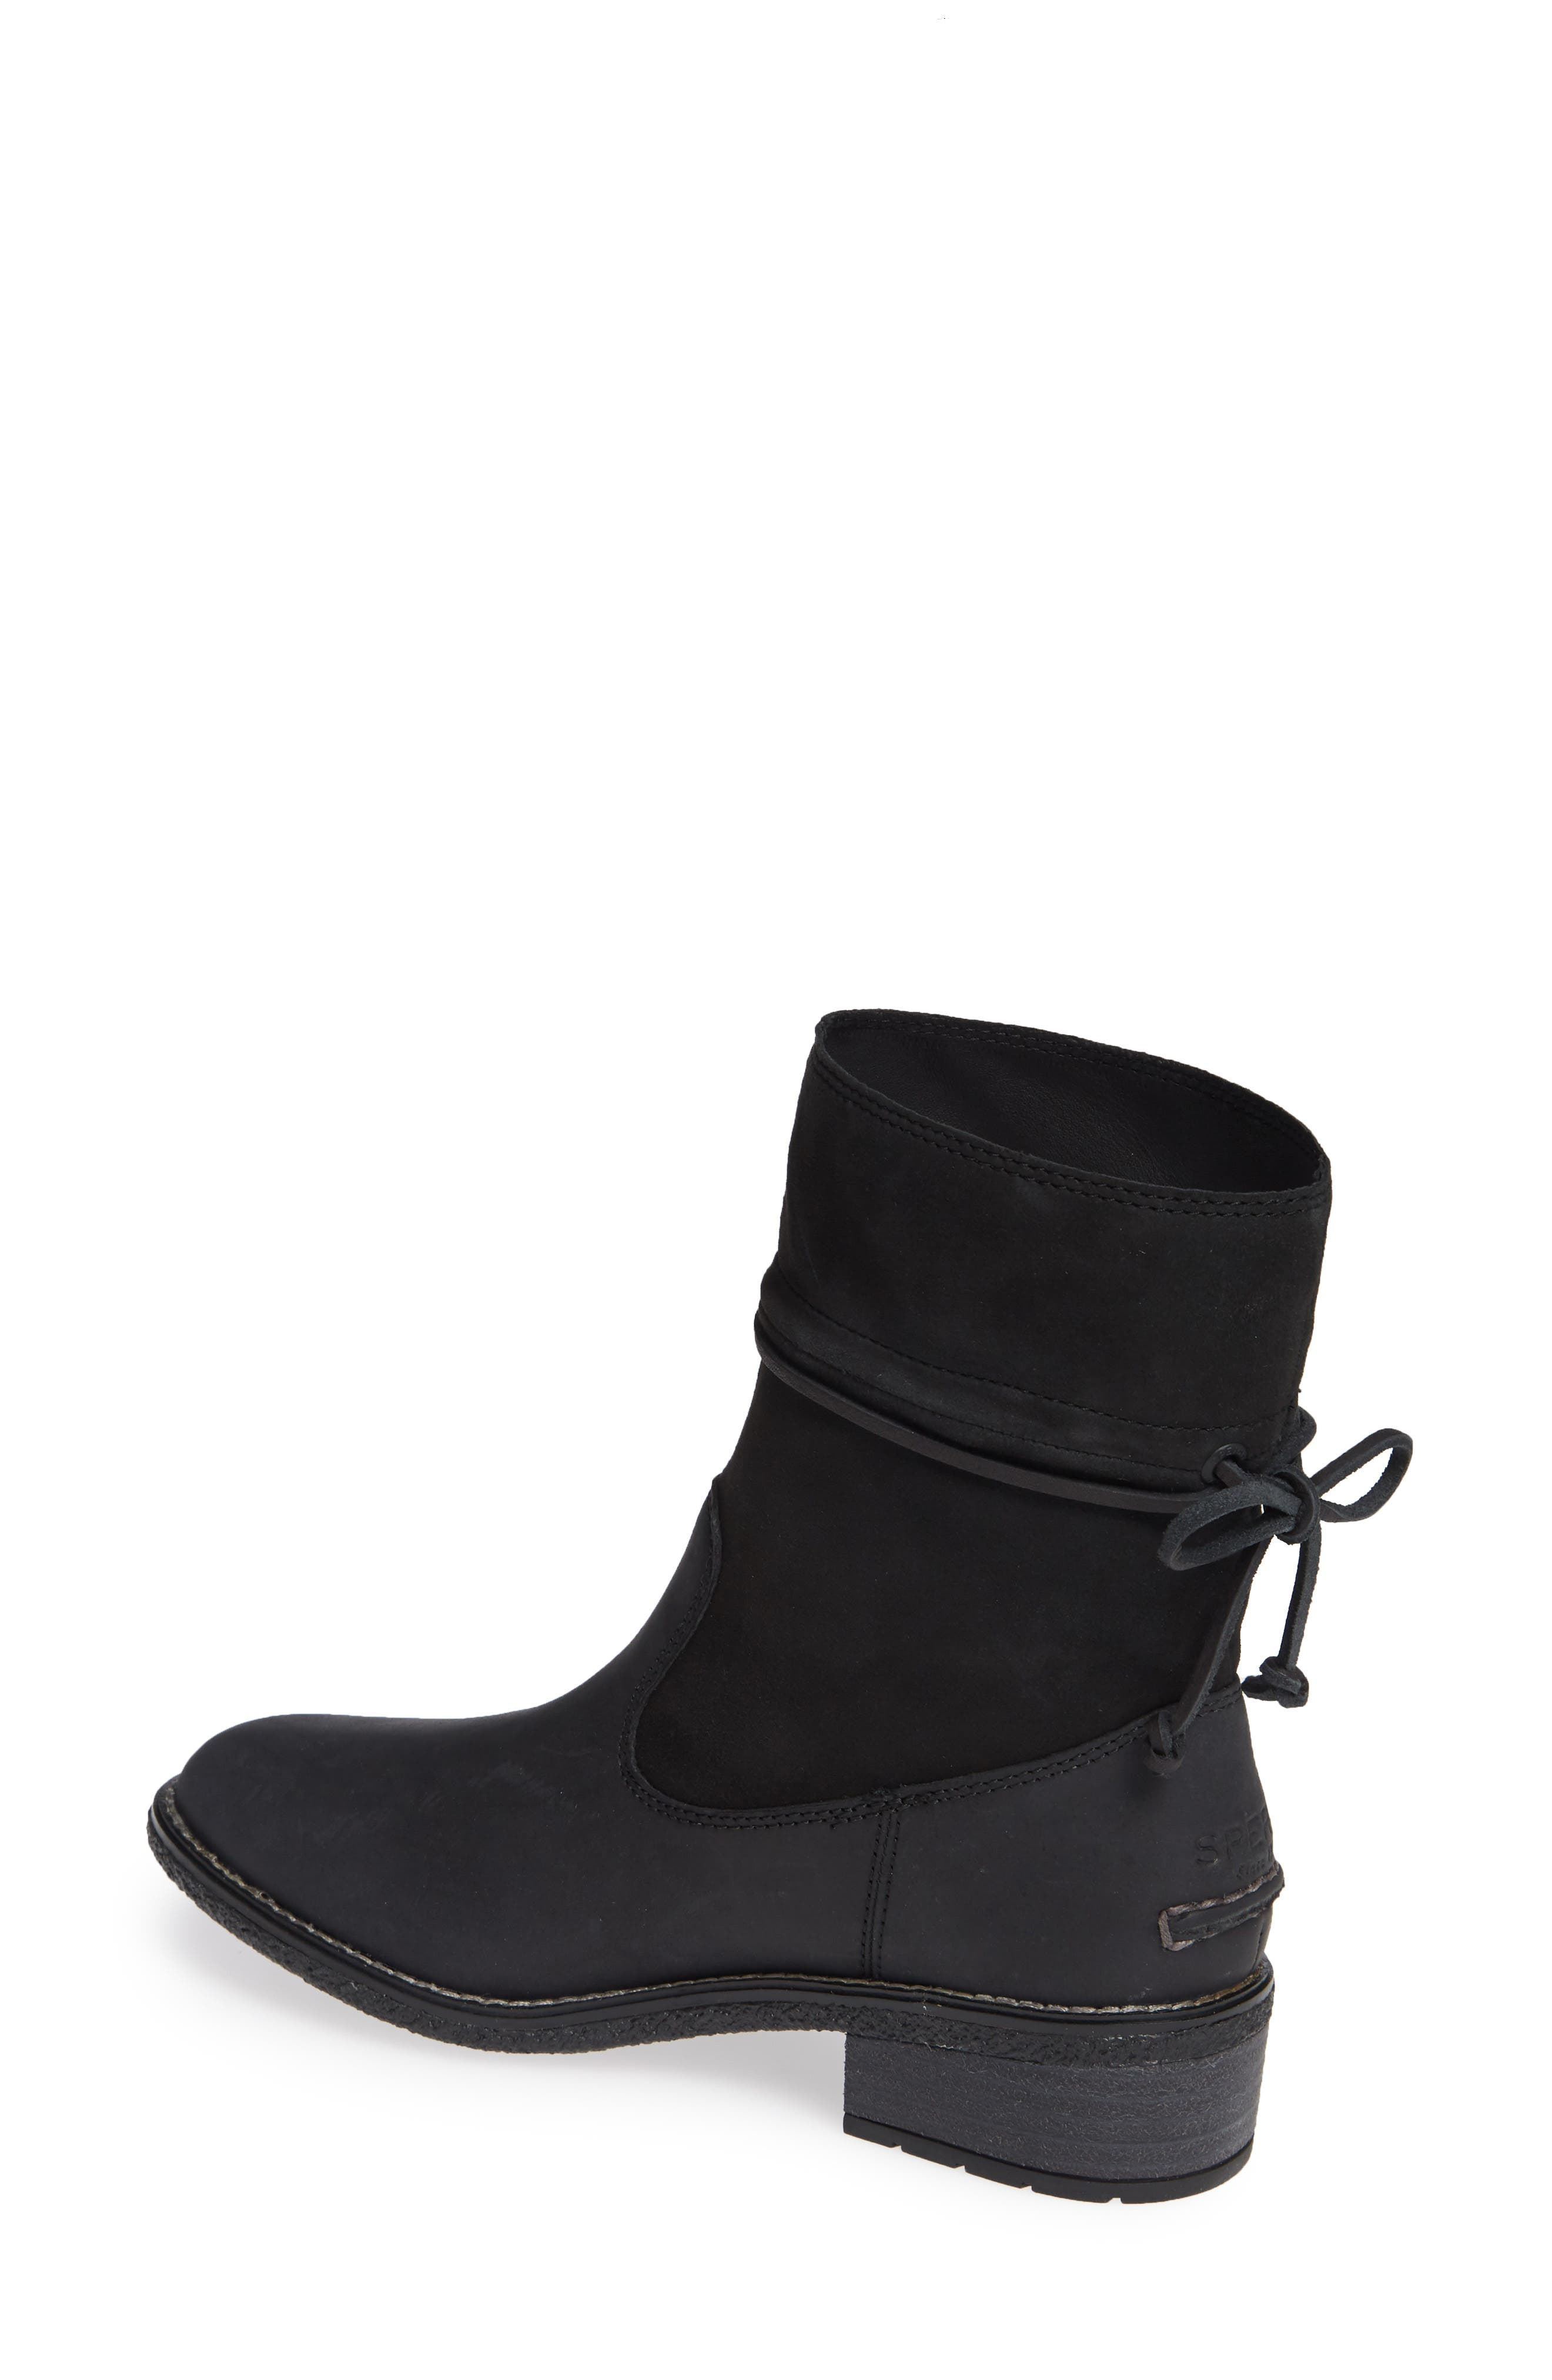 Maya Ronan Bootie,                             Alternate thumbnail 2, color,                             BLACK SUEDE/ LEATHER